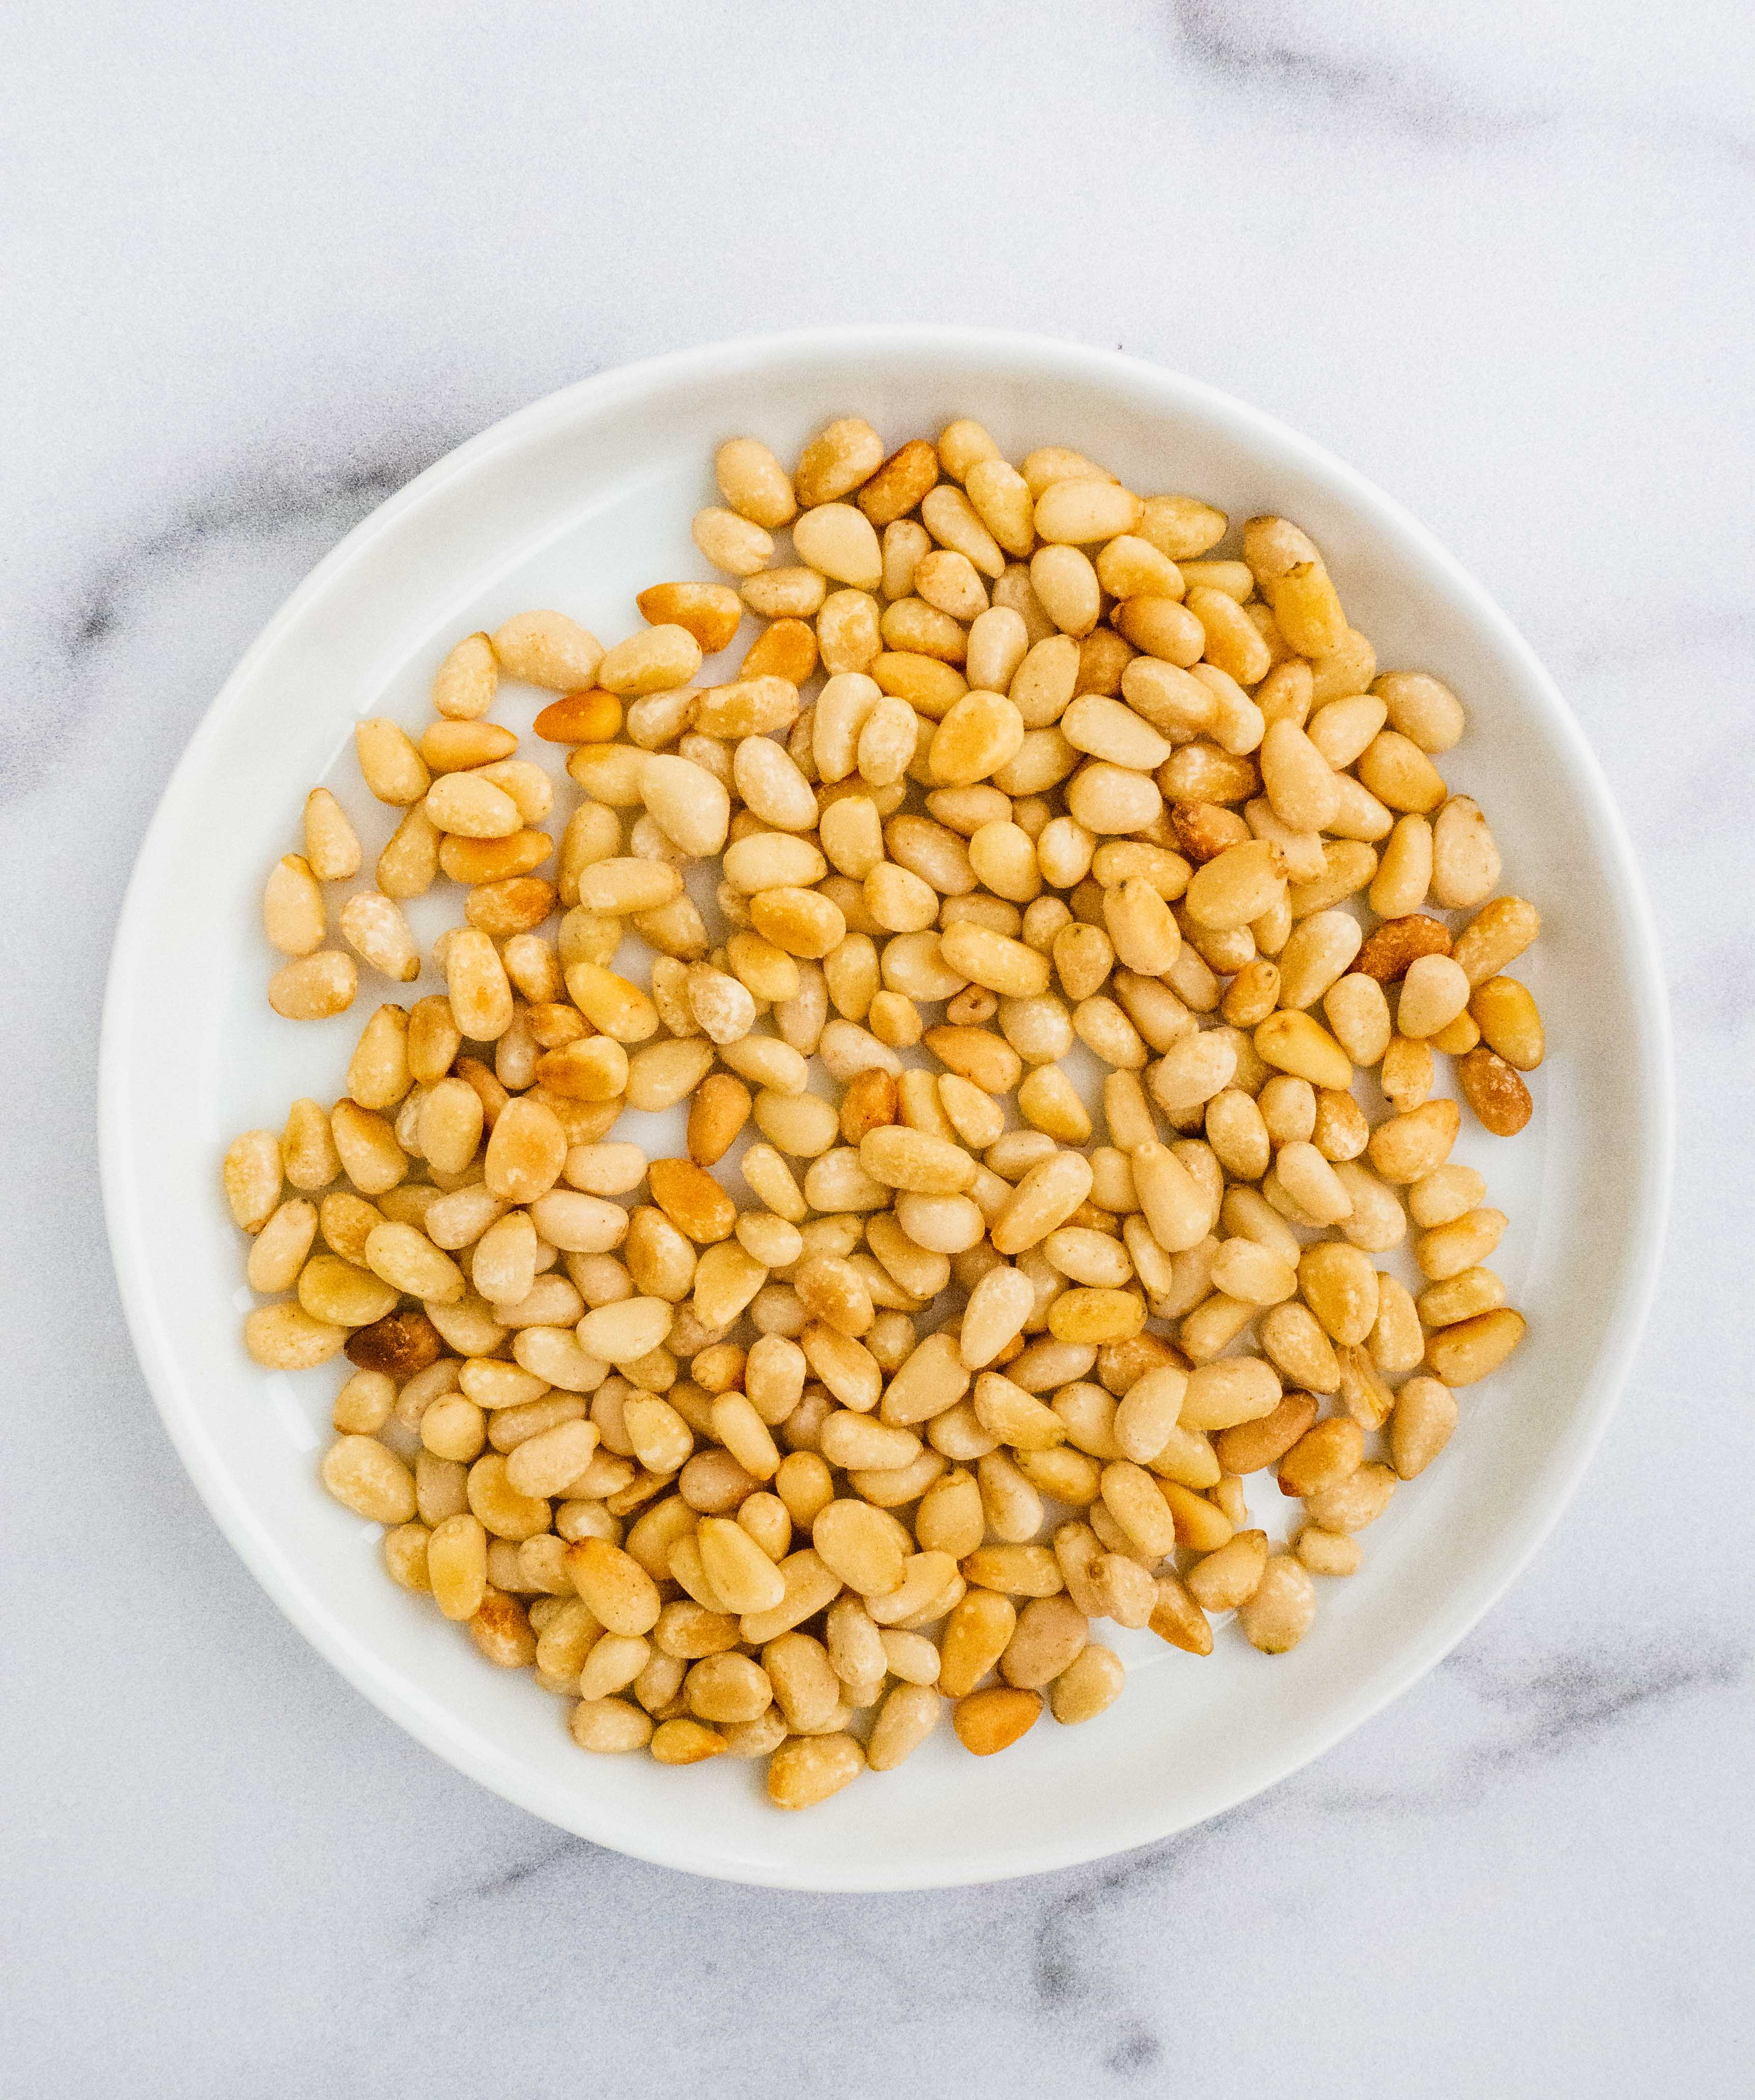 Main ingredient for vegan basil pesto: toasted pine nuts